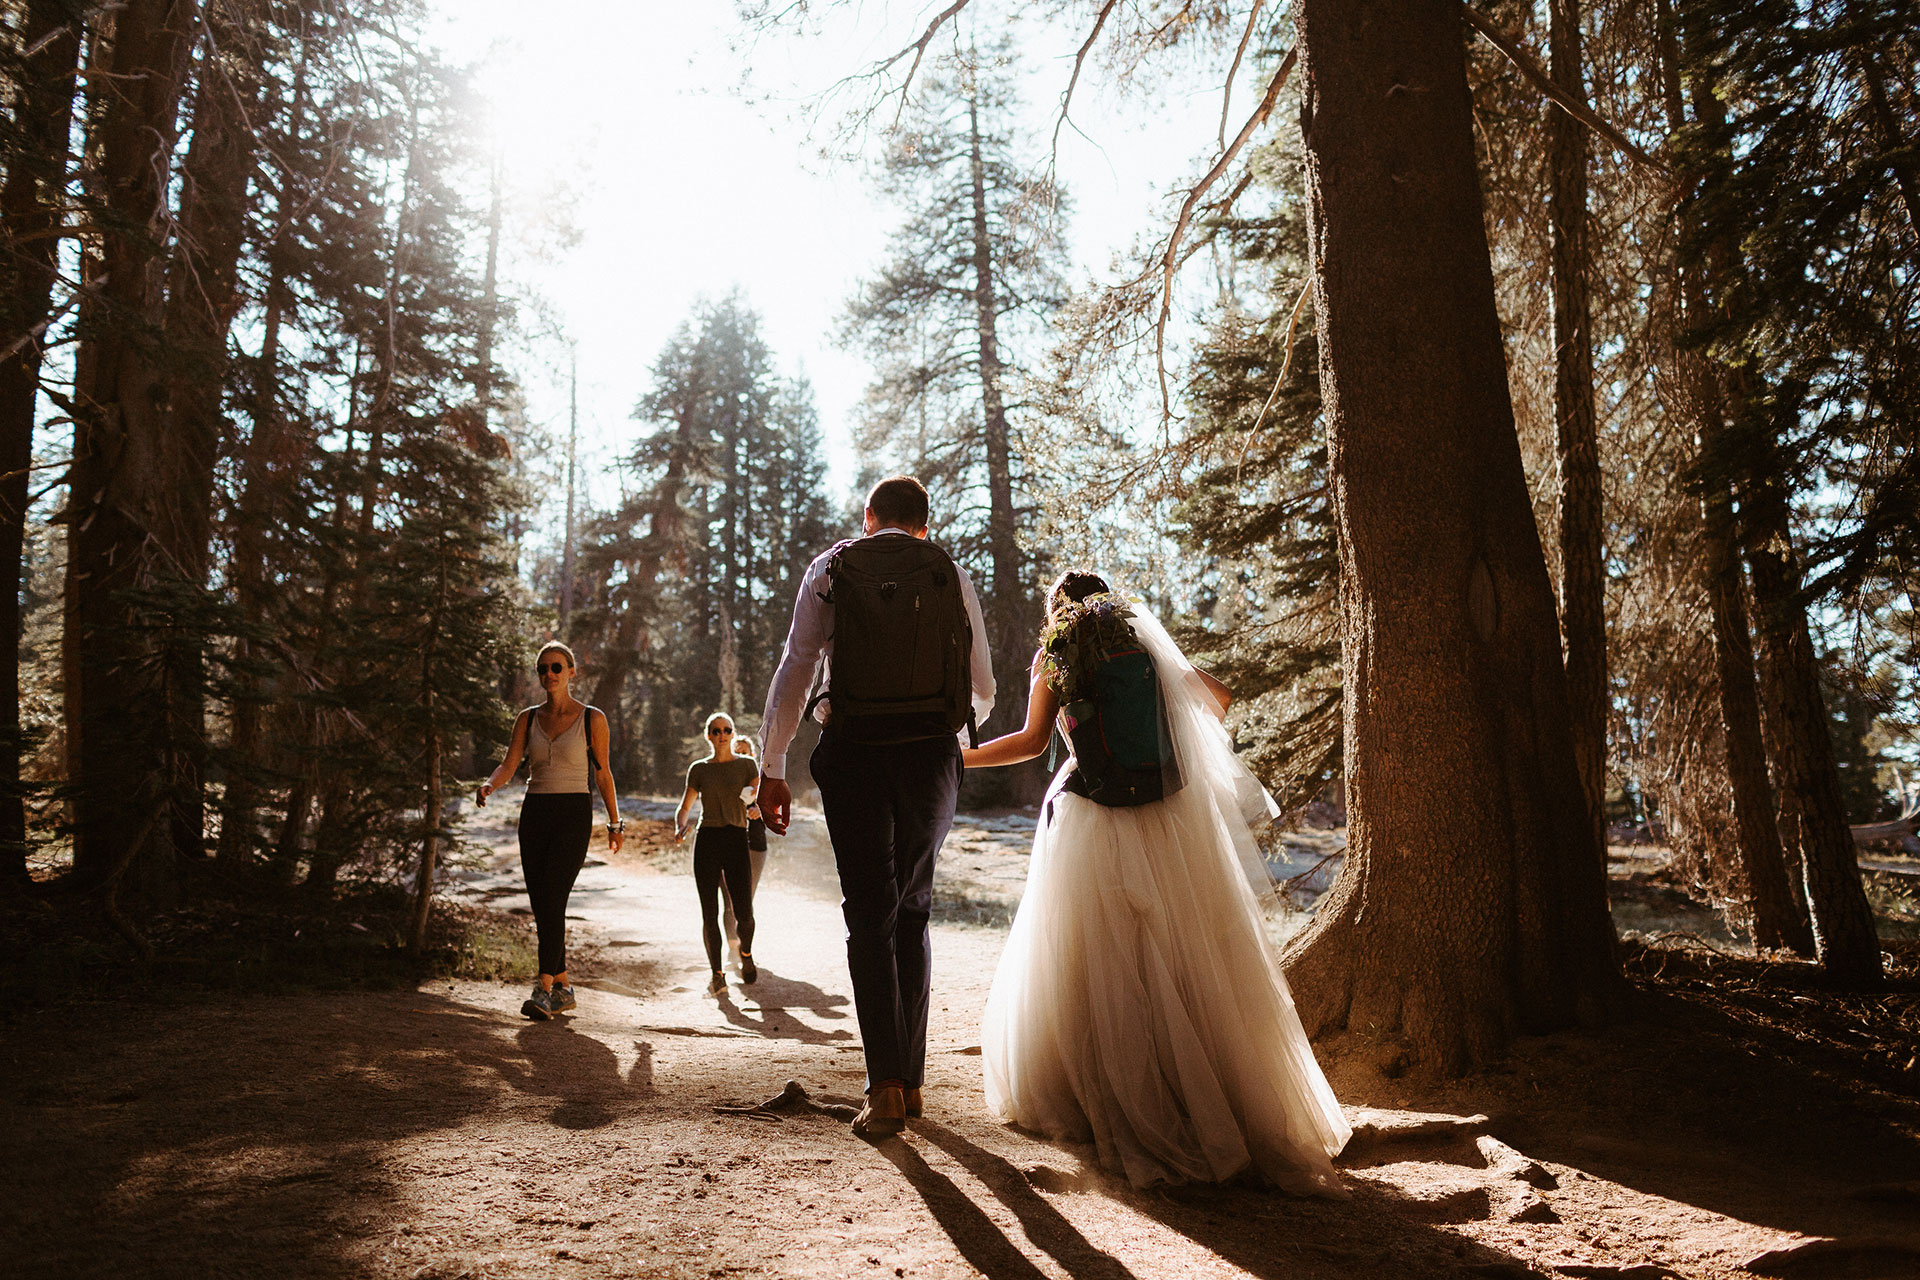 Yosemite National Park Elopement Photography   The bride and groom set off for Taft point